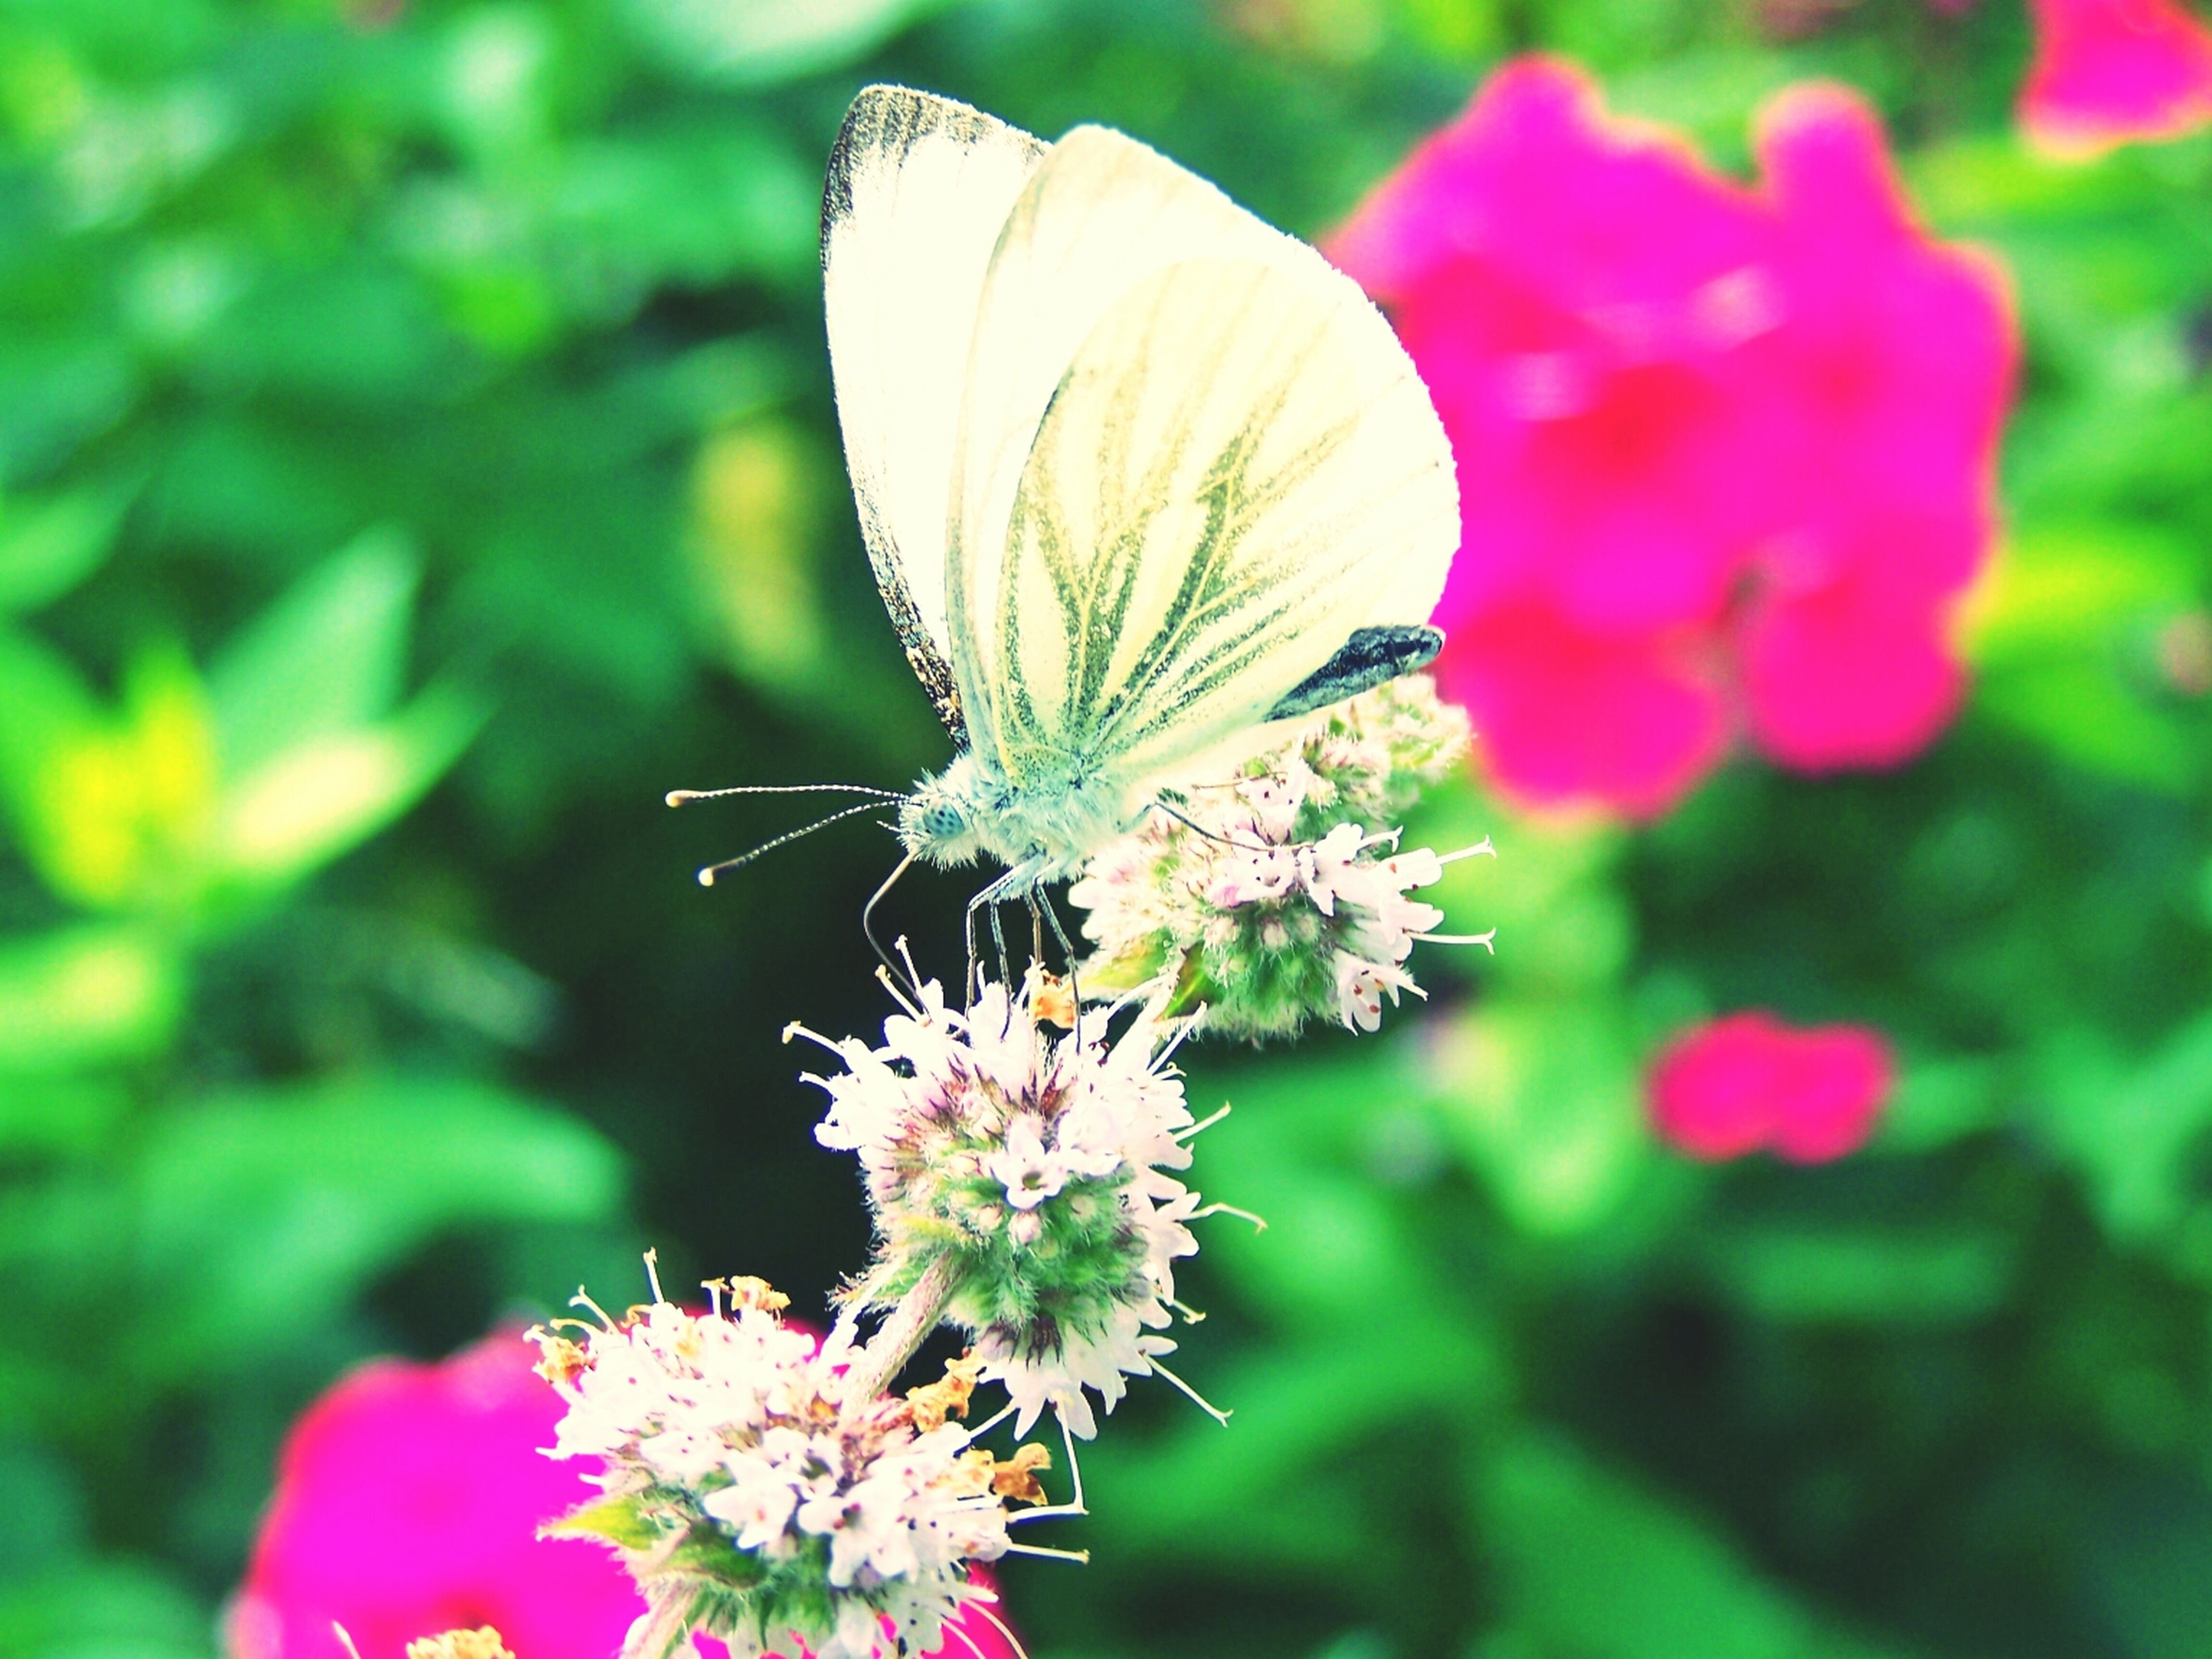 flower, fragility, freshness, petal, growth, focus on foreground, flower head, beauty in nature, close-up, plant, nature, insect, blooming, stem, one animal, in bloom, pink color, blossom, outdoors, day